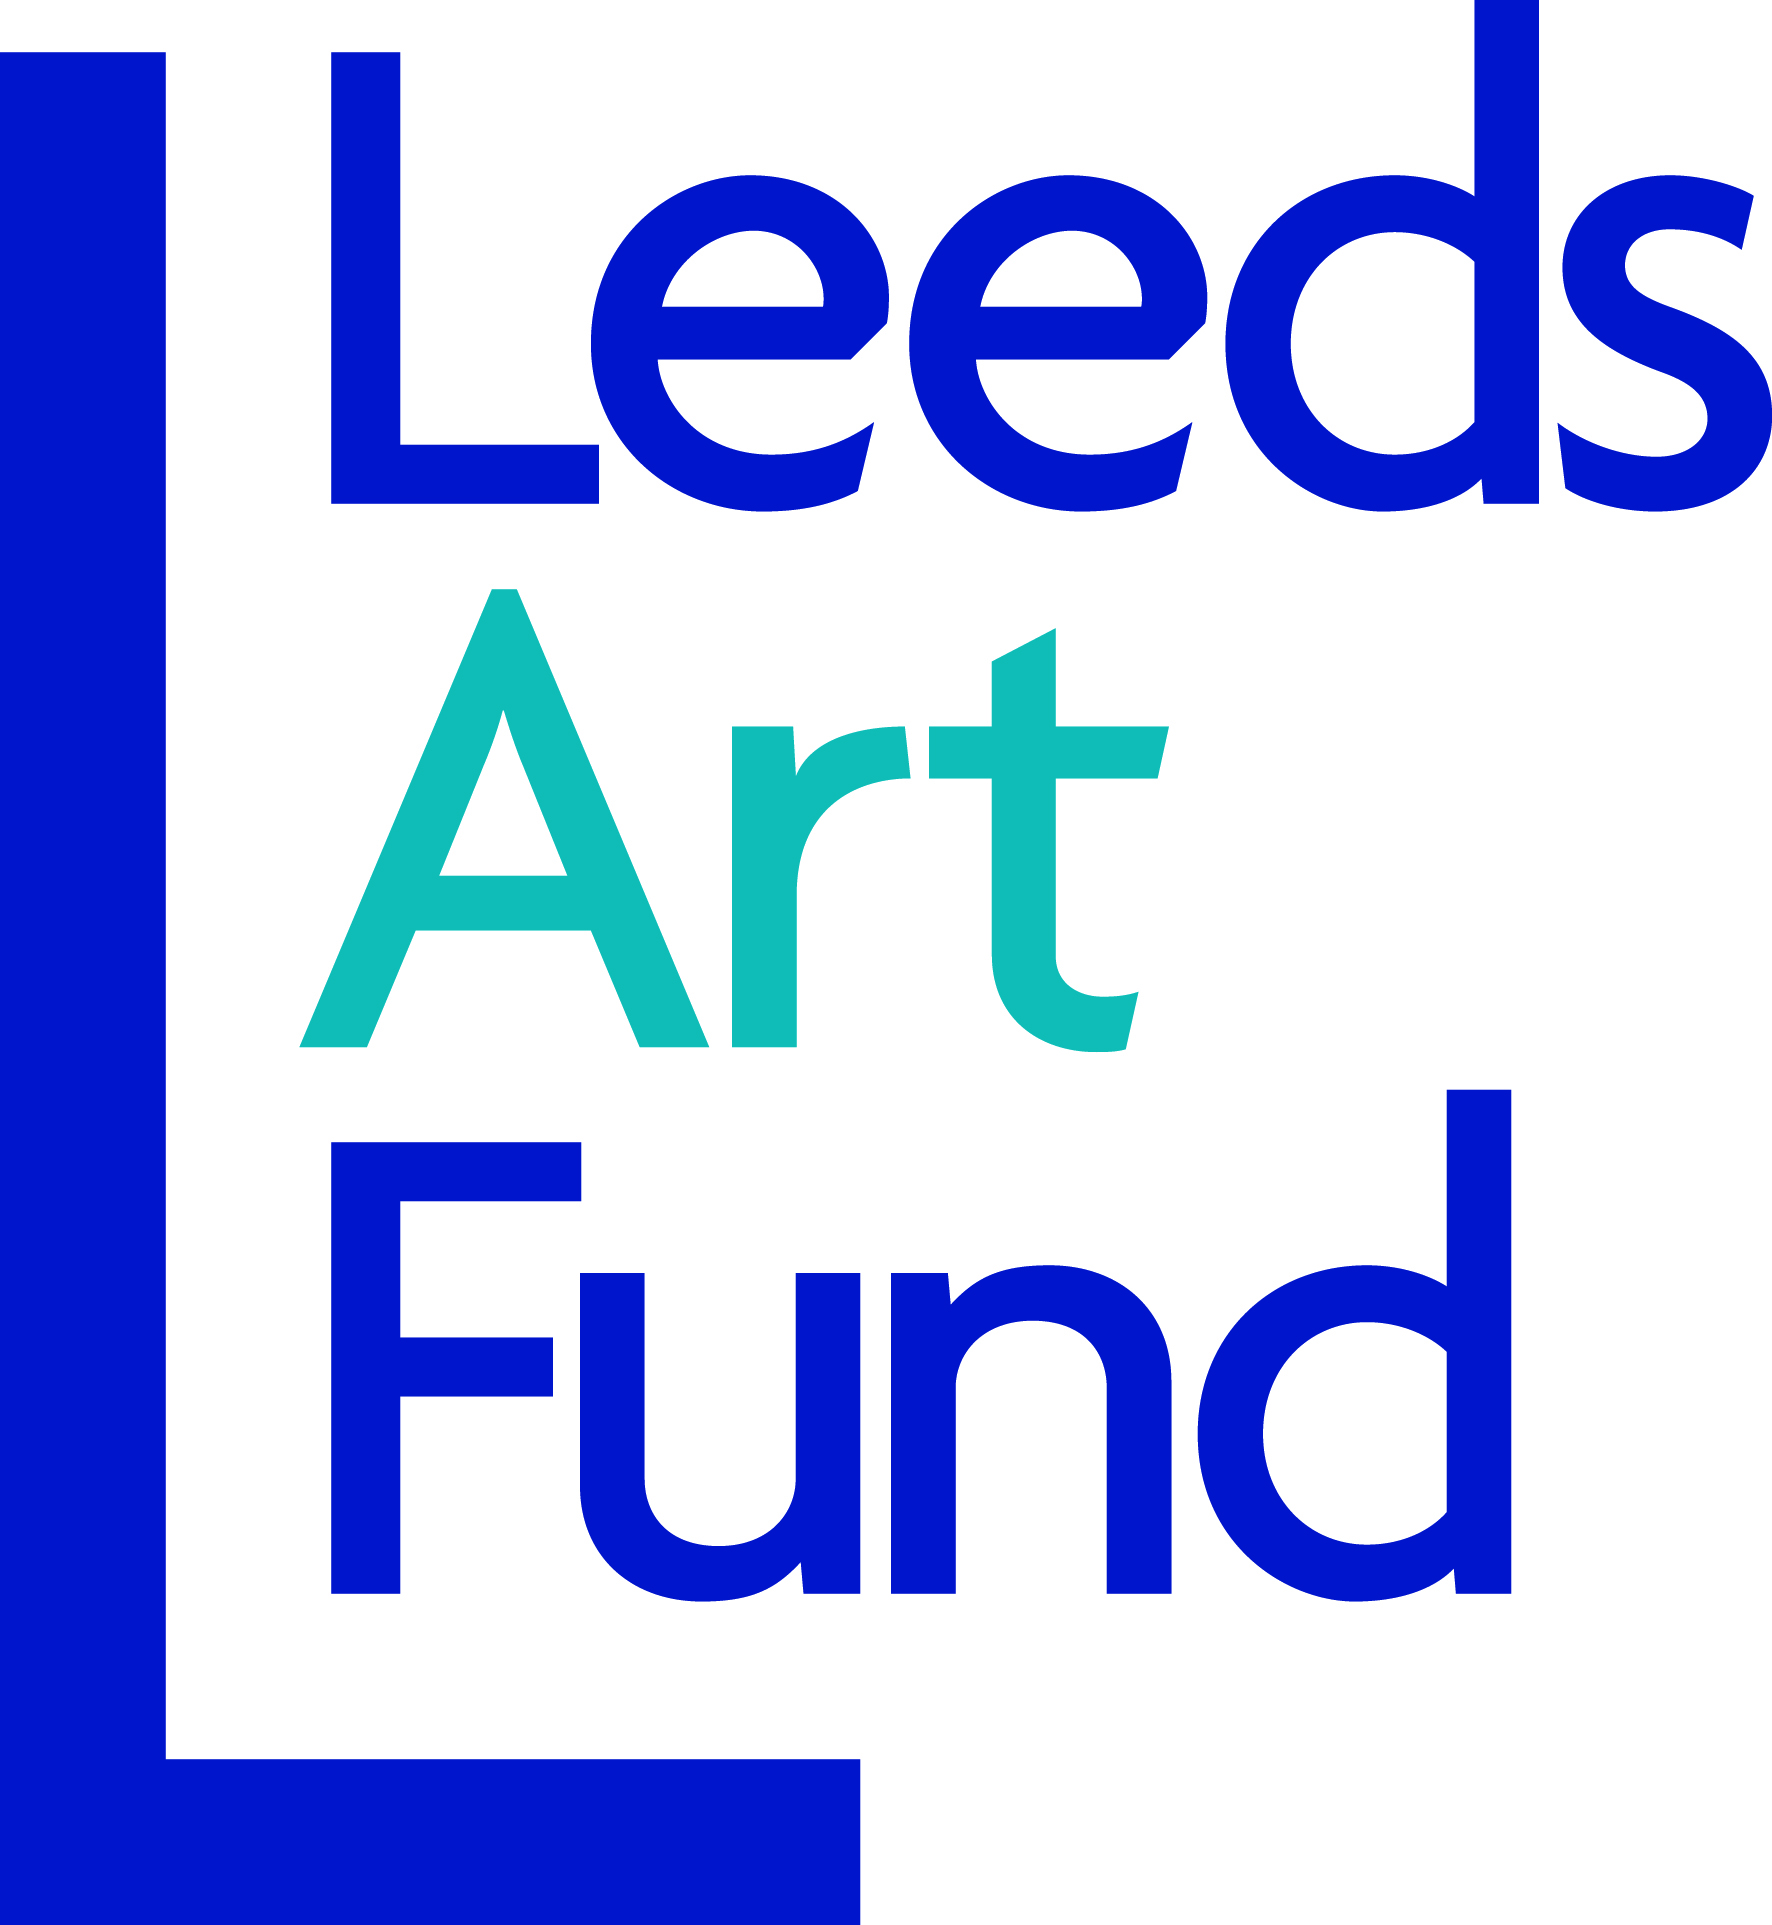 Leeds Art Fund - This book was made possible thanx to a grant from the Leeds Art Fund